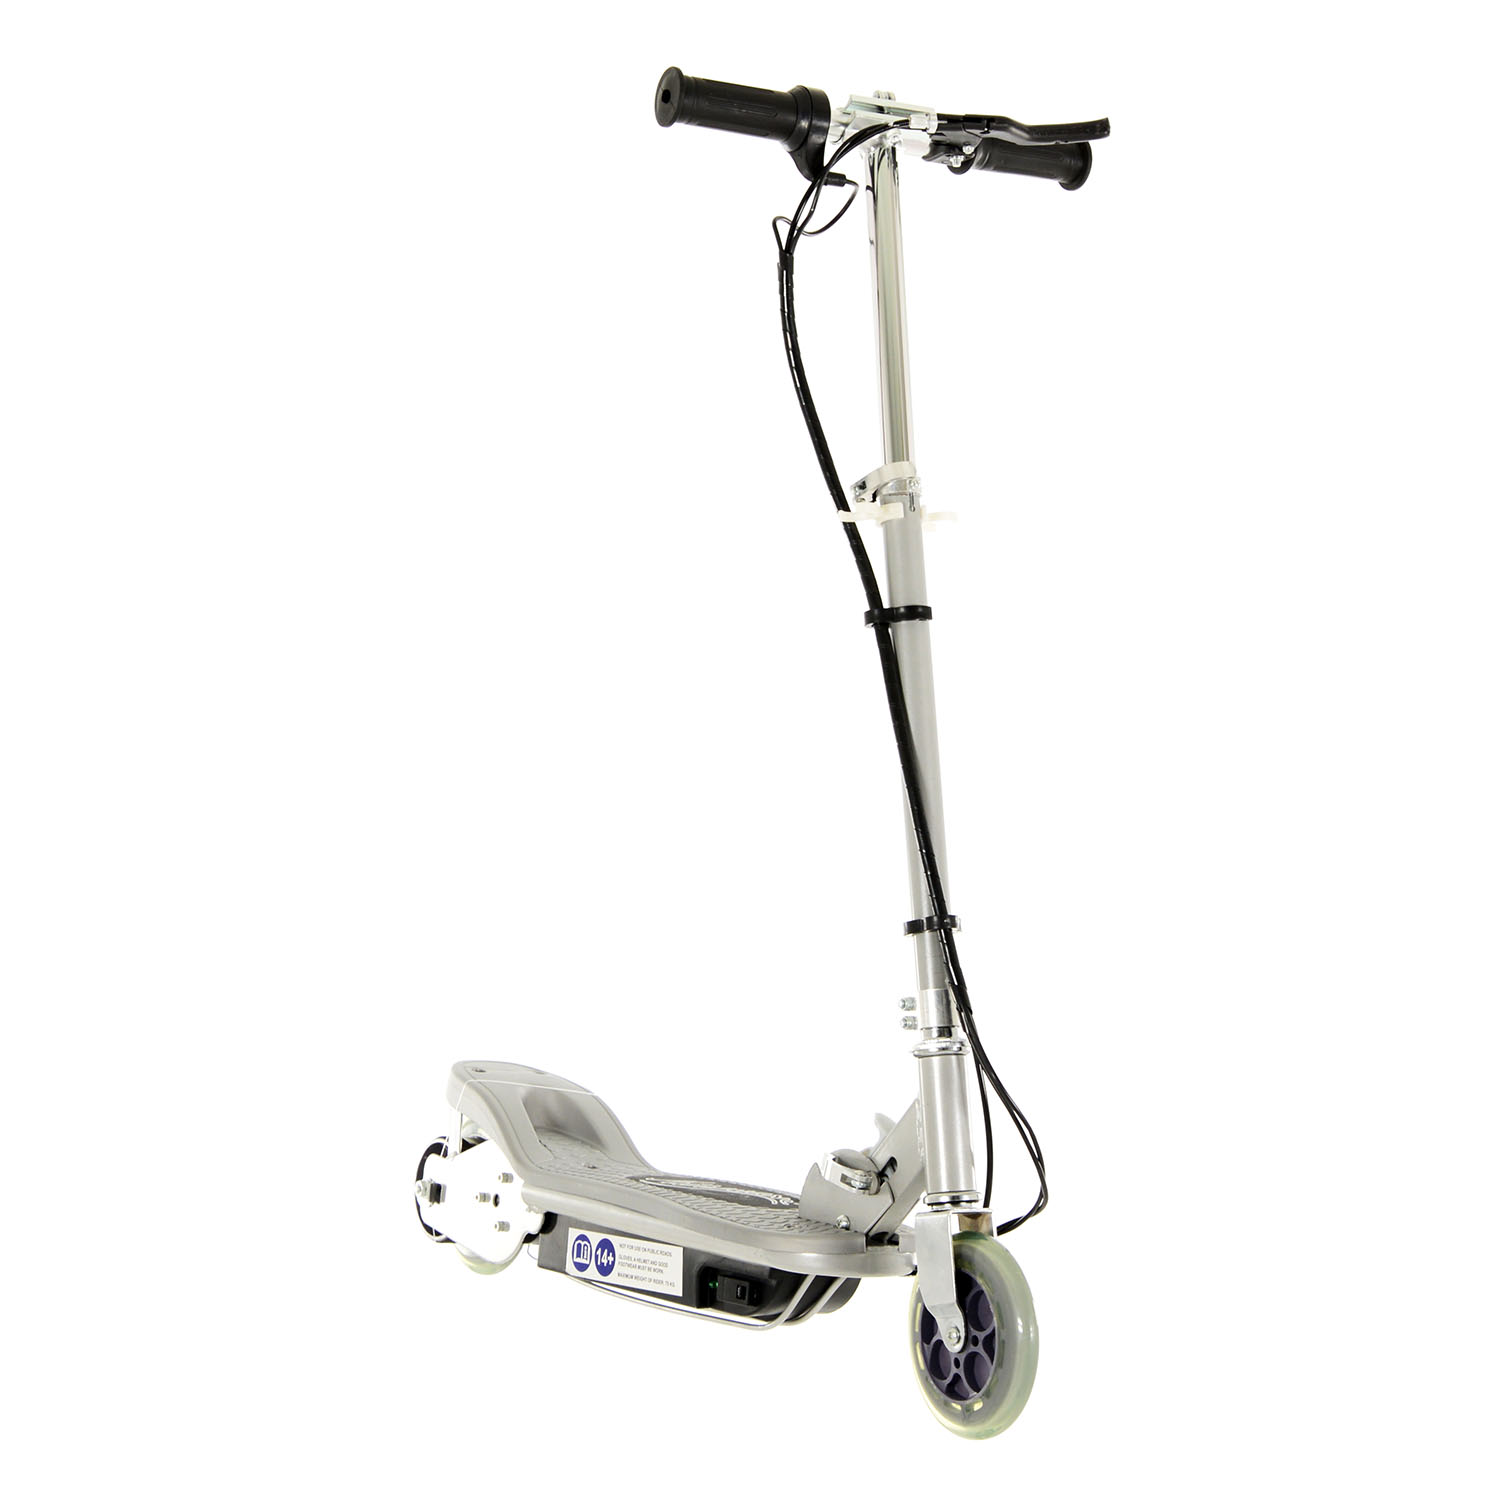 Airwave Electric Kids Scooter 24v Battery Ride On Toy Bike 120w